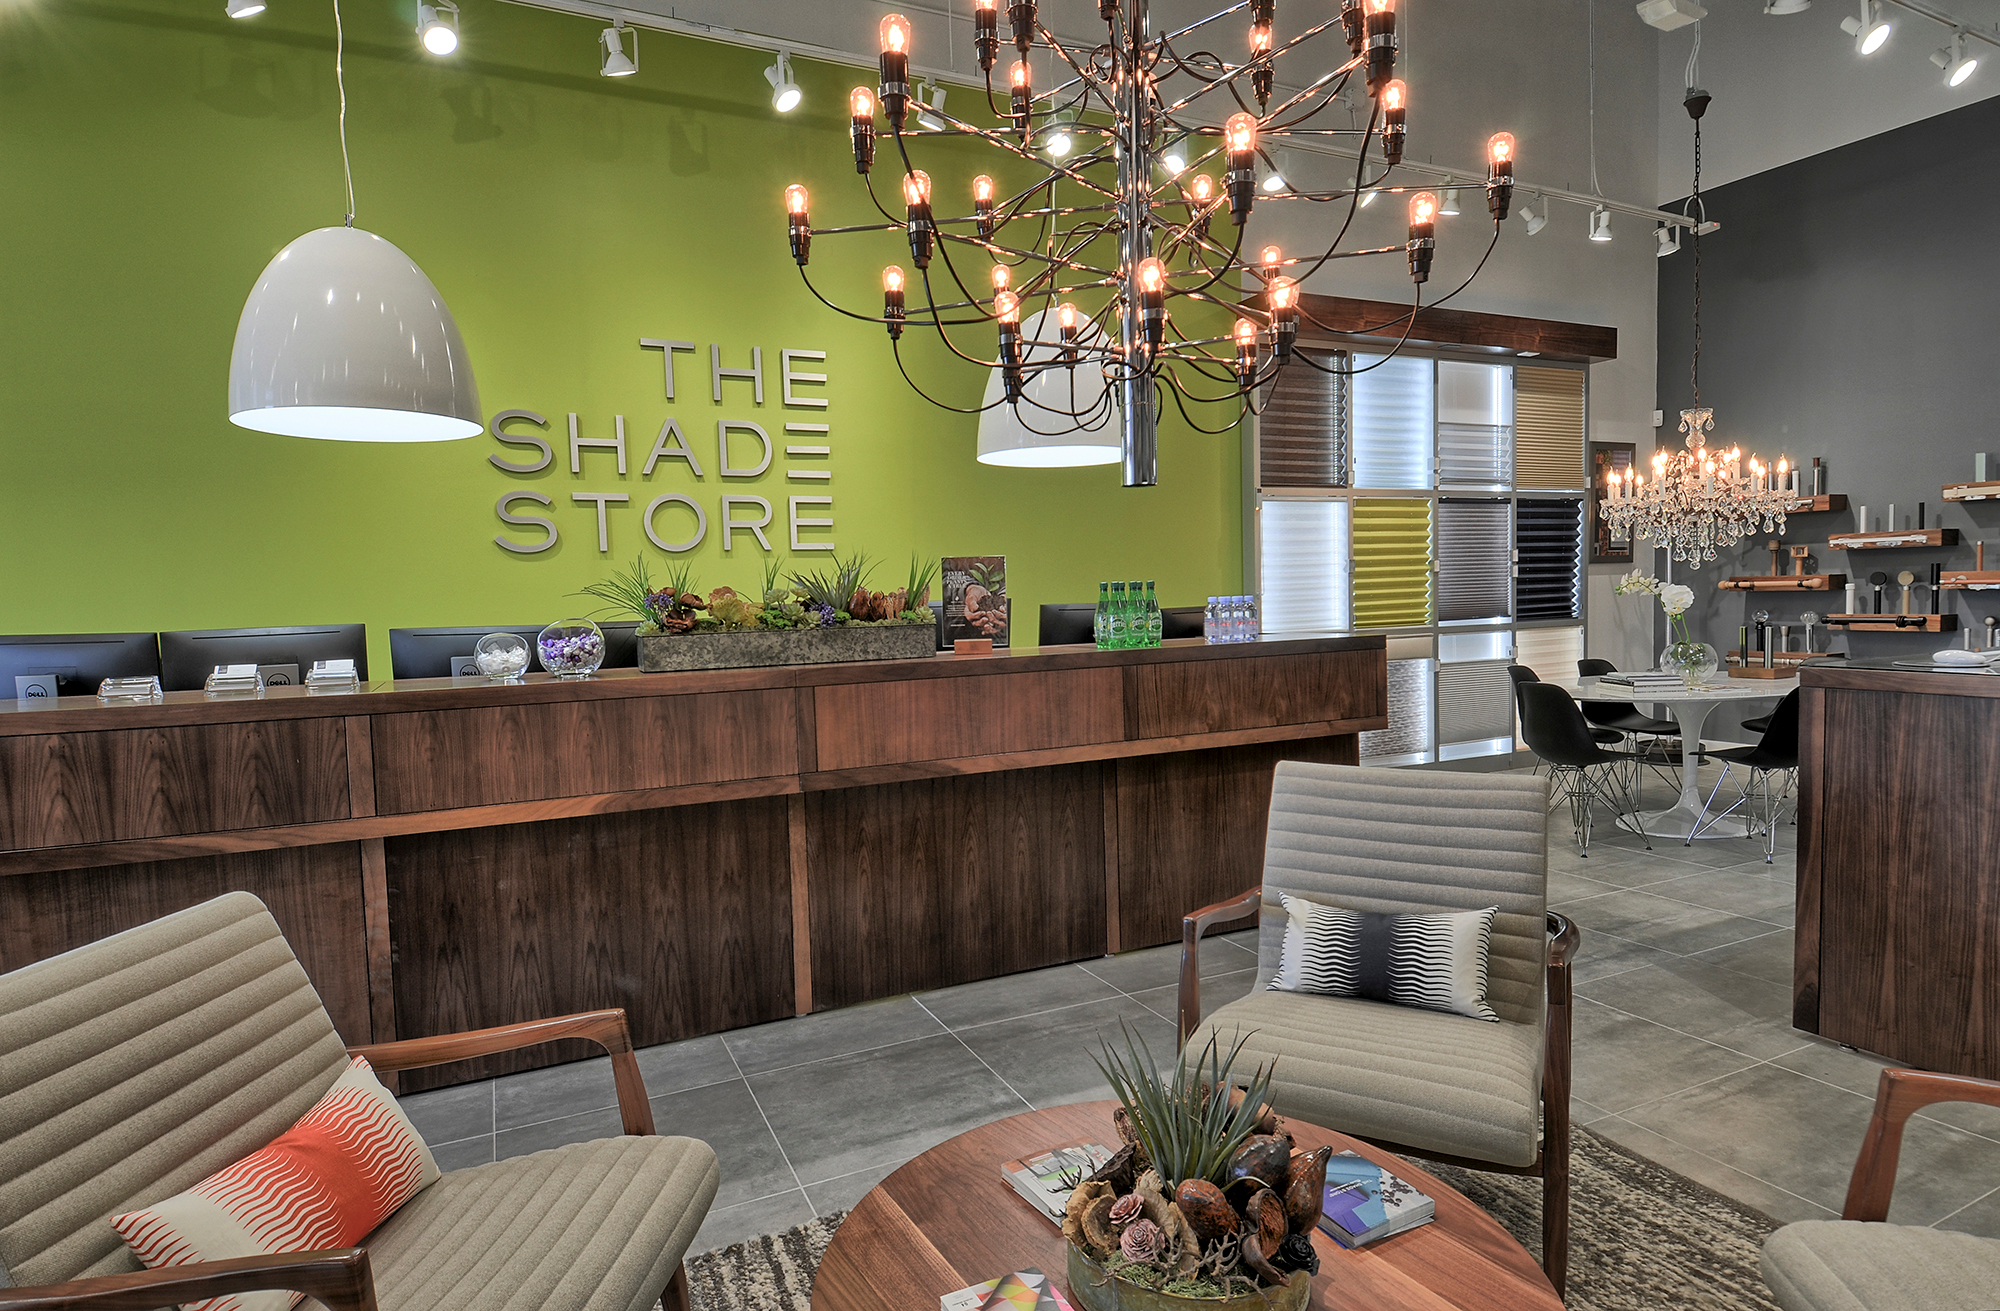 The Shade Store image 7